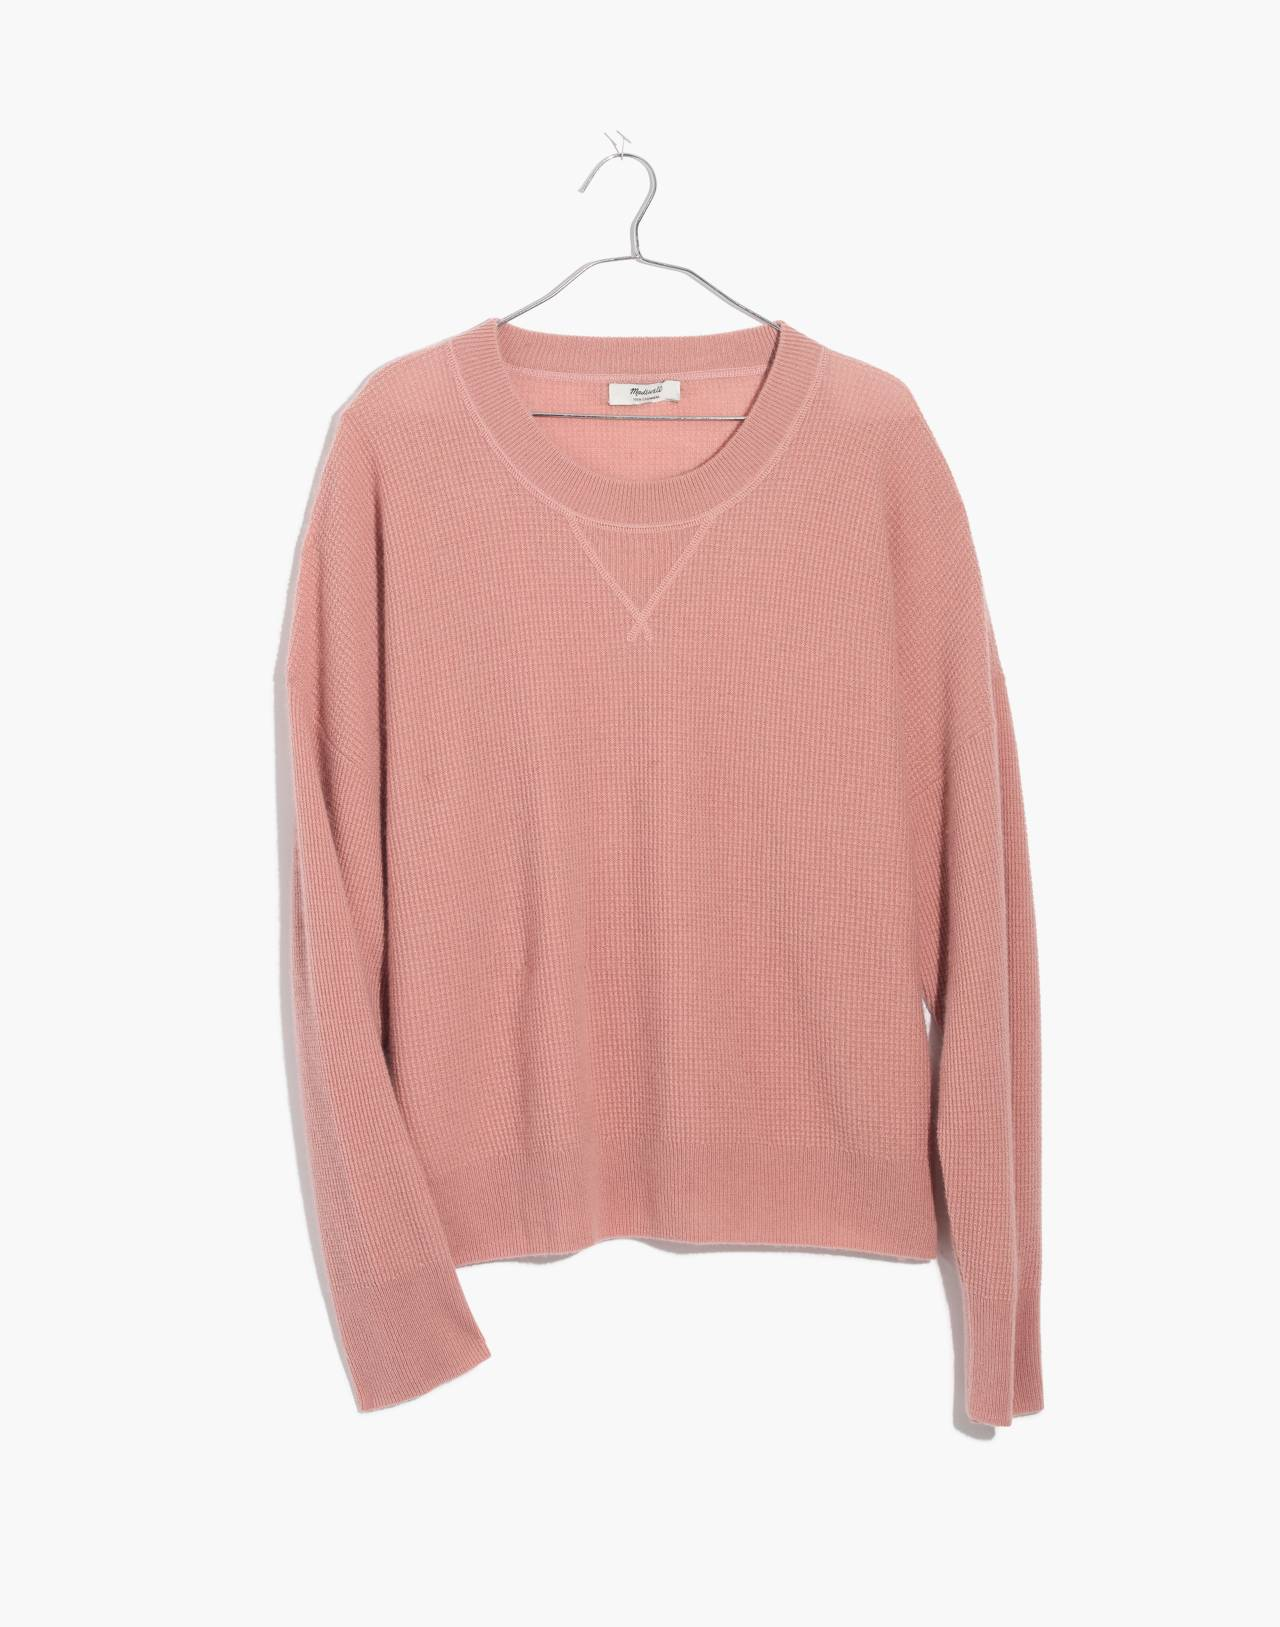 Cashmere Sweatshirt in pink clay image 4